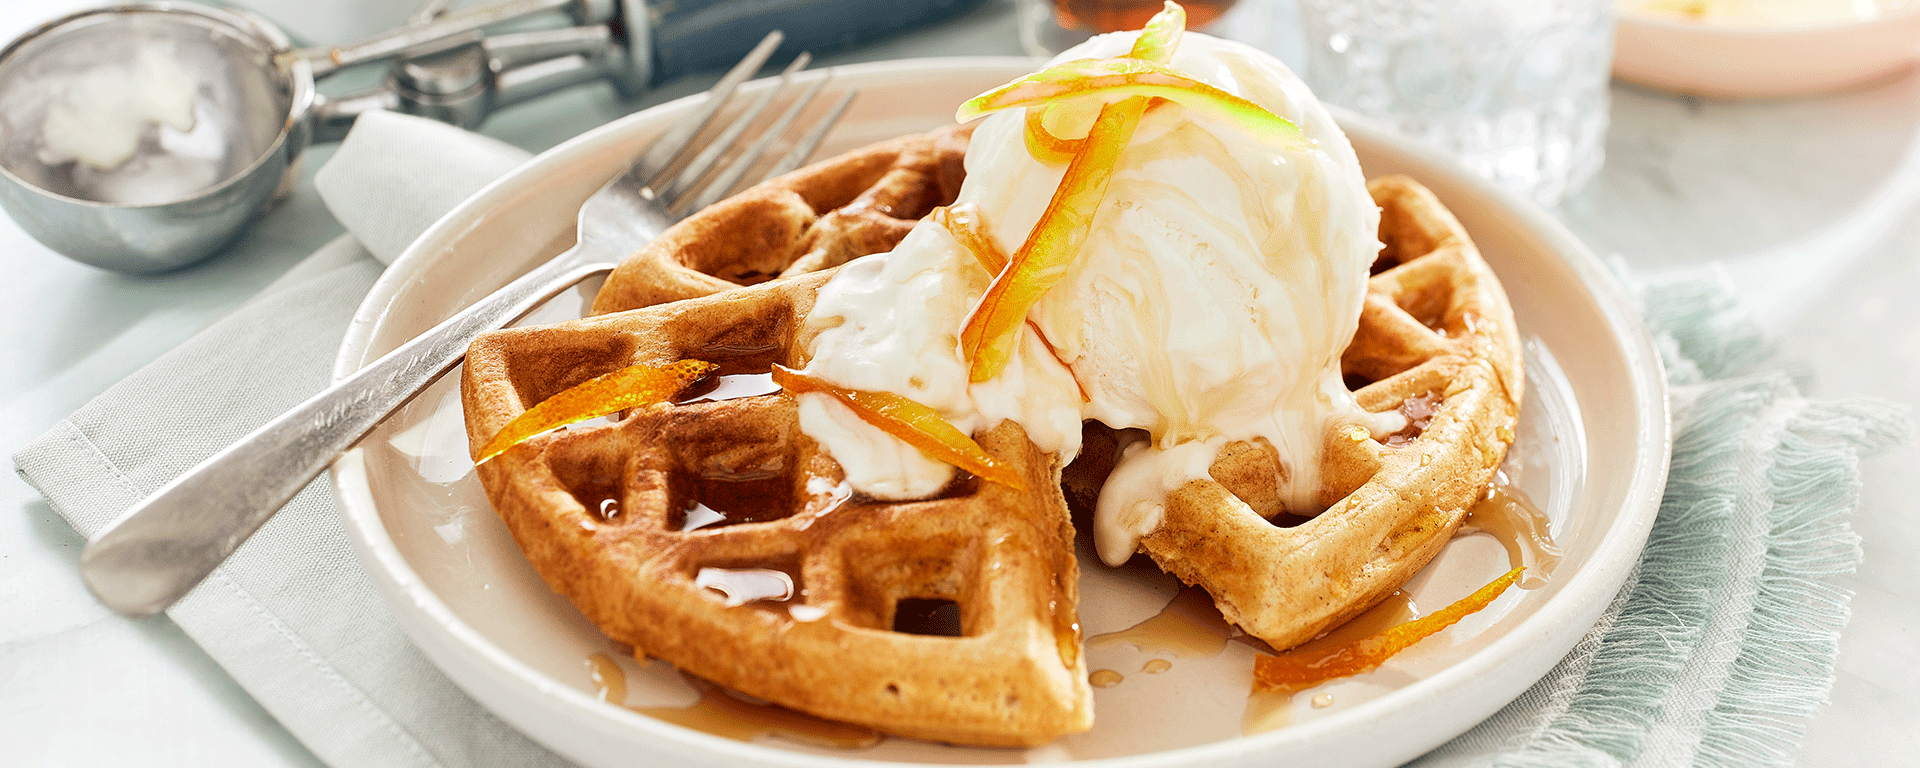 Photo for - Ginger Cardamom Waffles with Honey Ice Cream and Candied Orange Peel